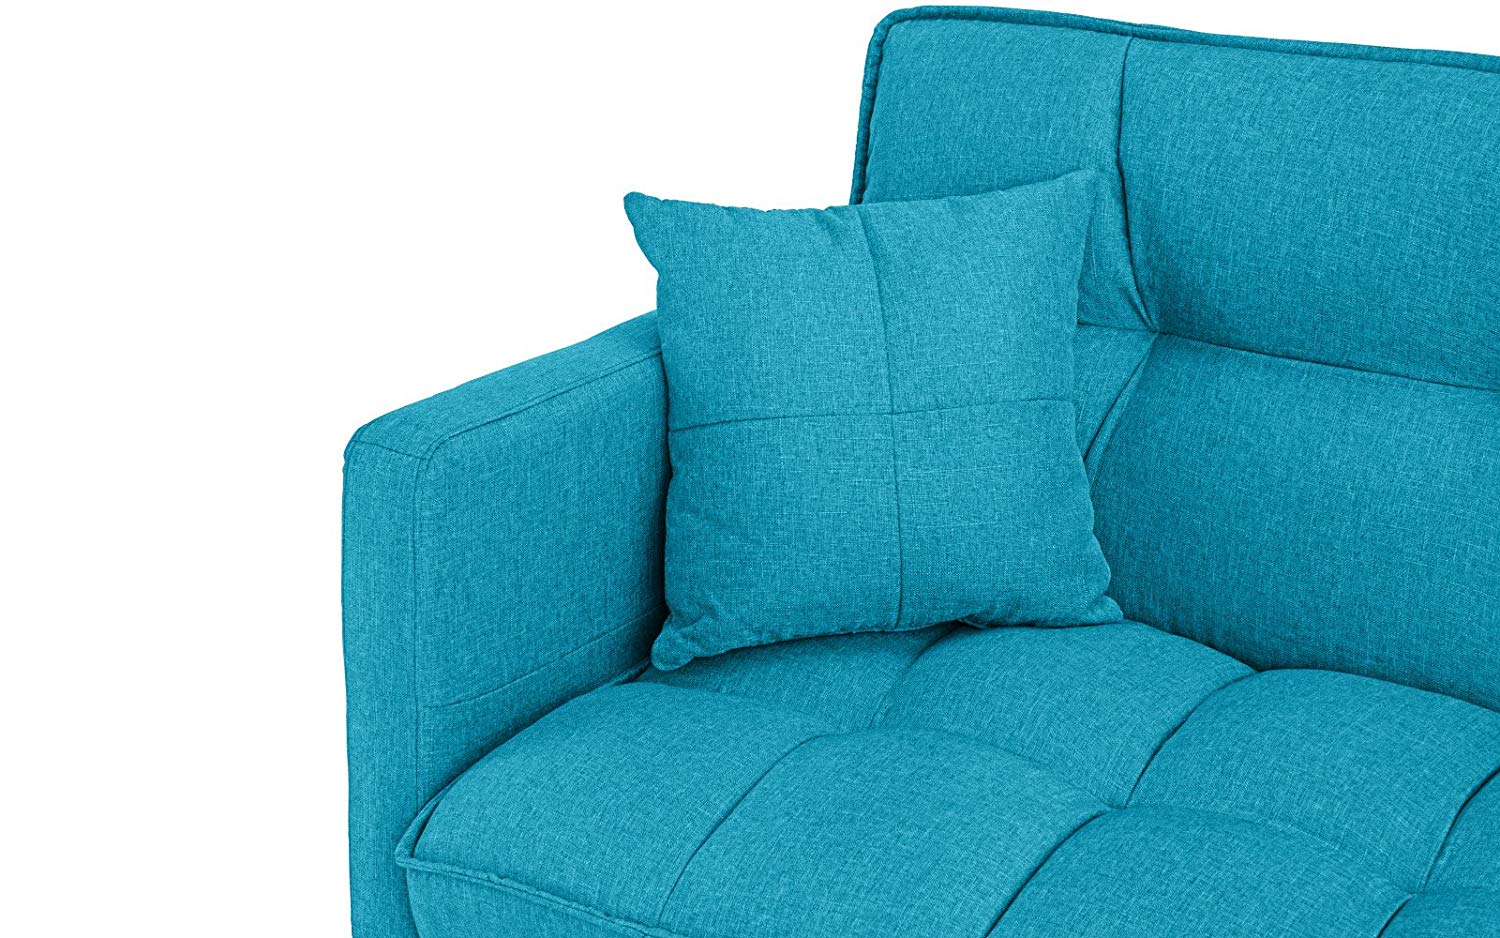 7 Best Sofa Beds Mar 2020 Reviews Buying Guide